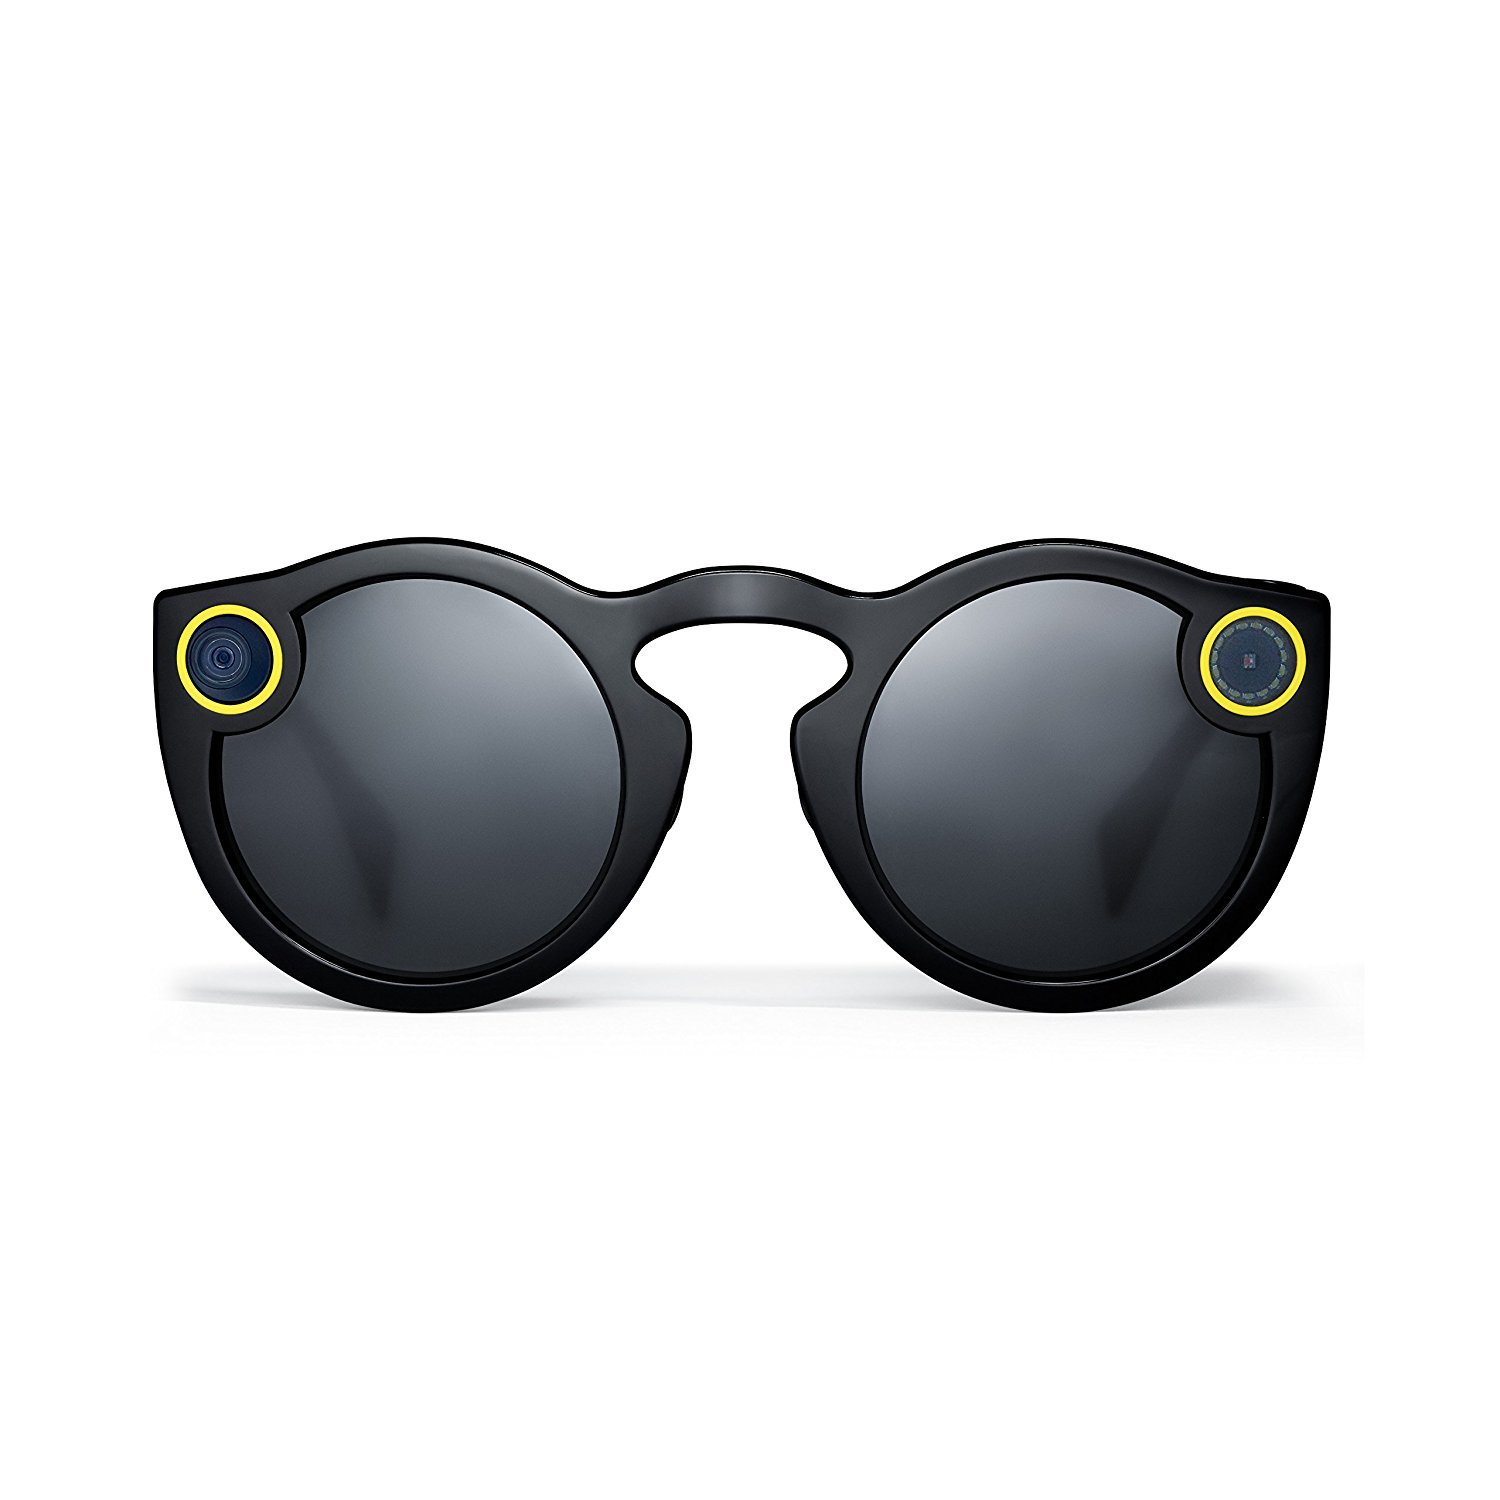 Spectacles - Sunglasses for Snapchat